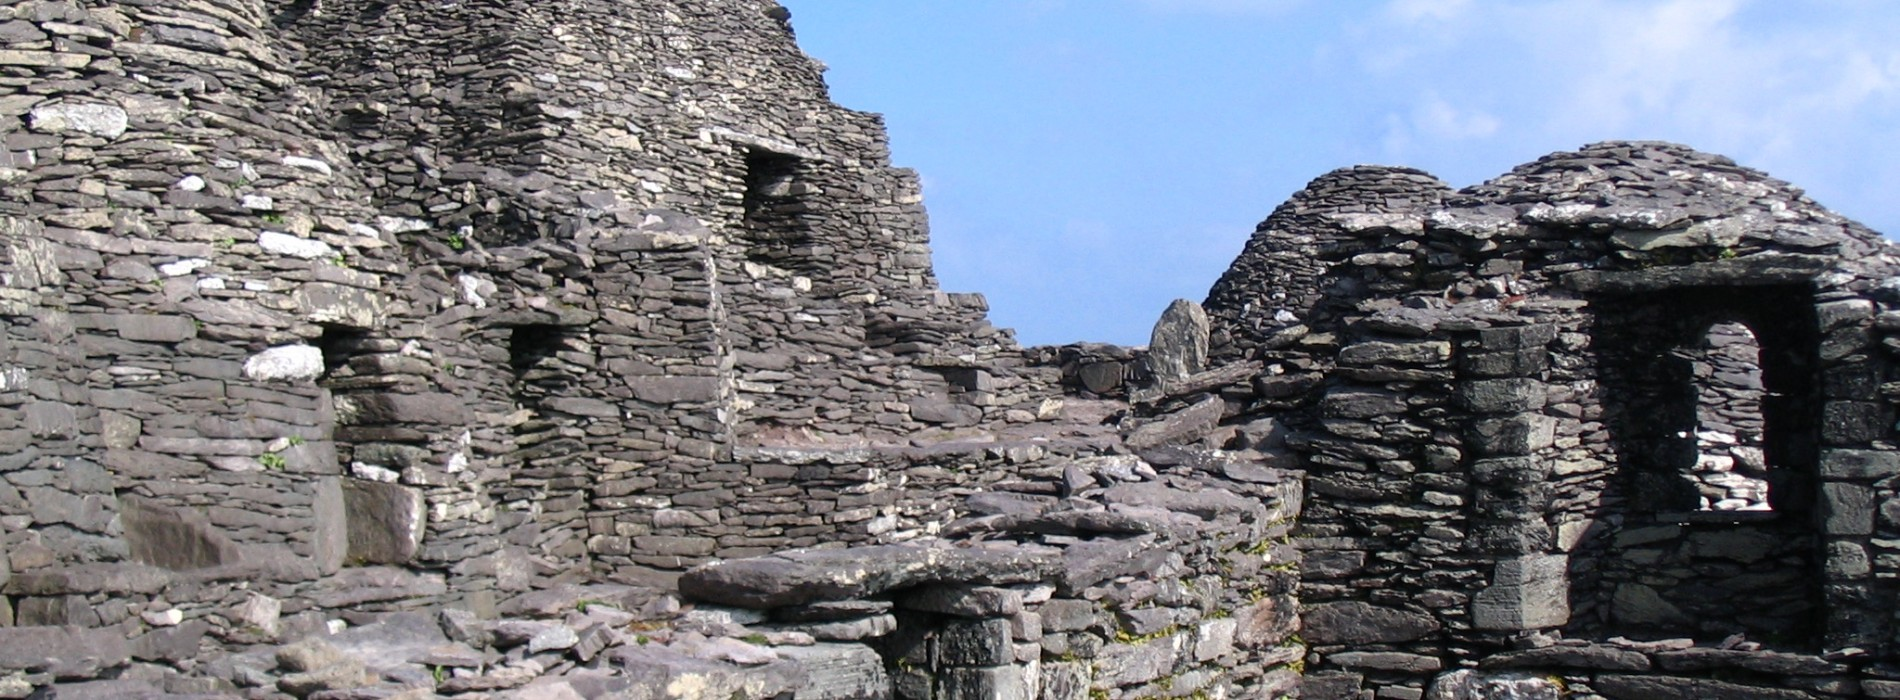 The Skellig Islands – The Home of Very Lonely Monks